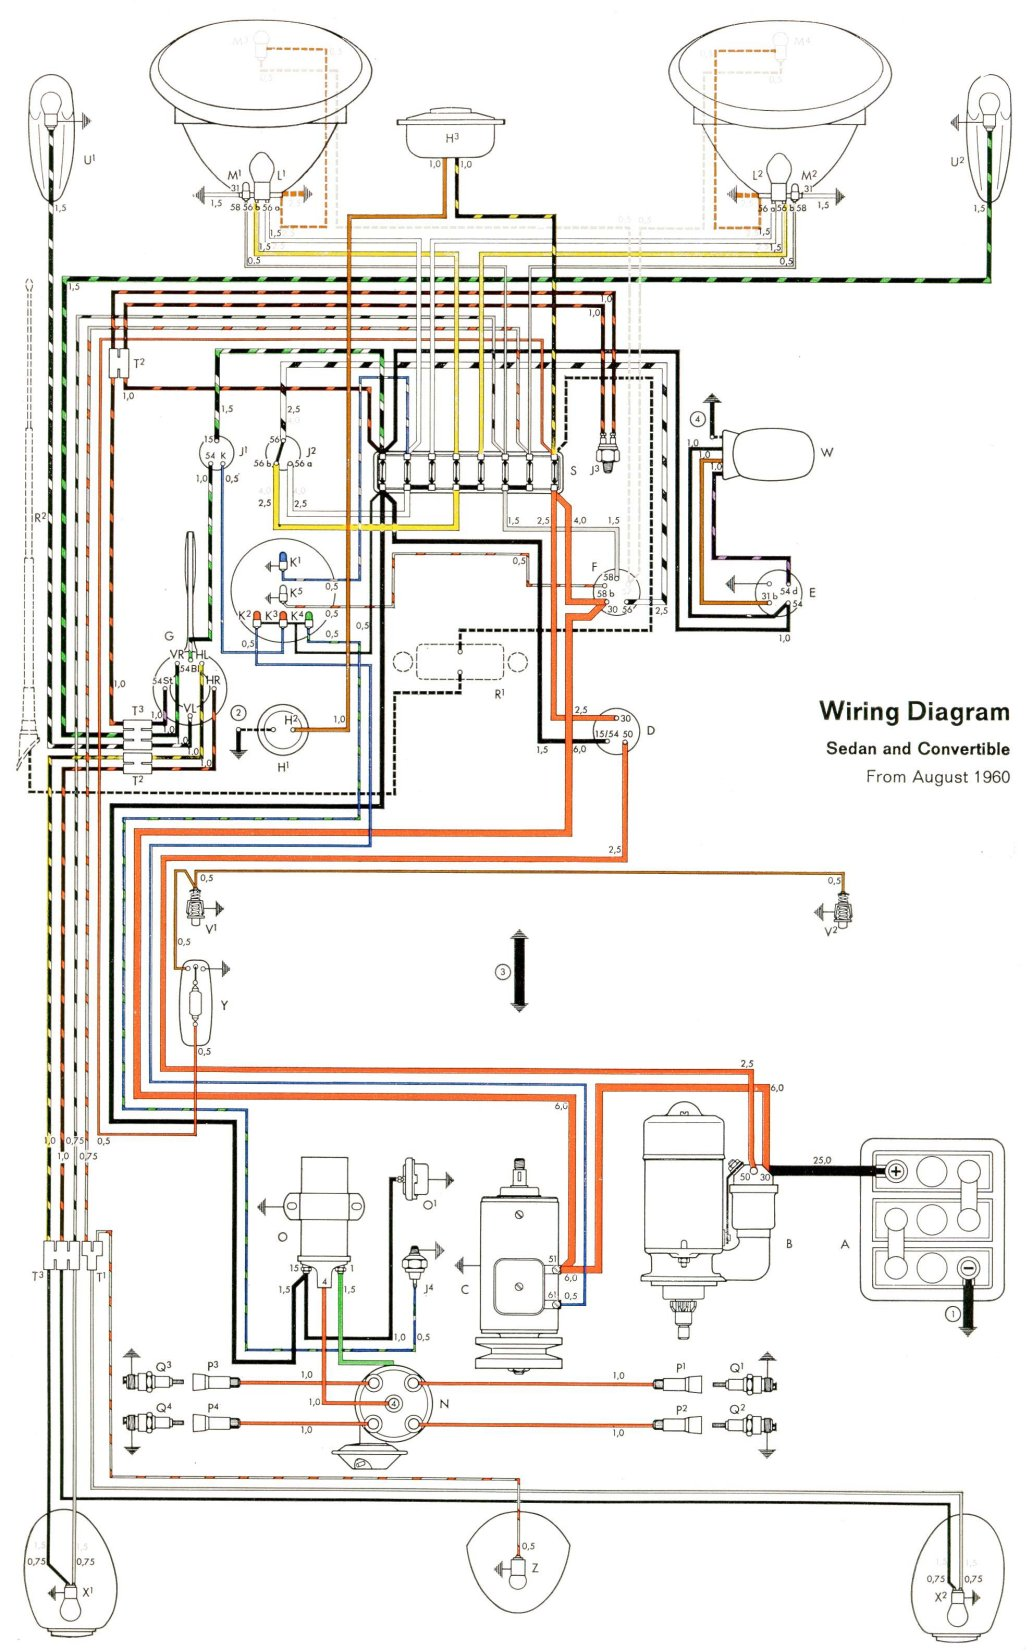 hight resolution of thesamba com type 1 wiring diagrams 1974 volkswagen wiring diagram 1974 vw wiring diagrams